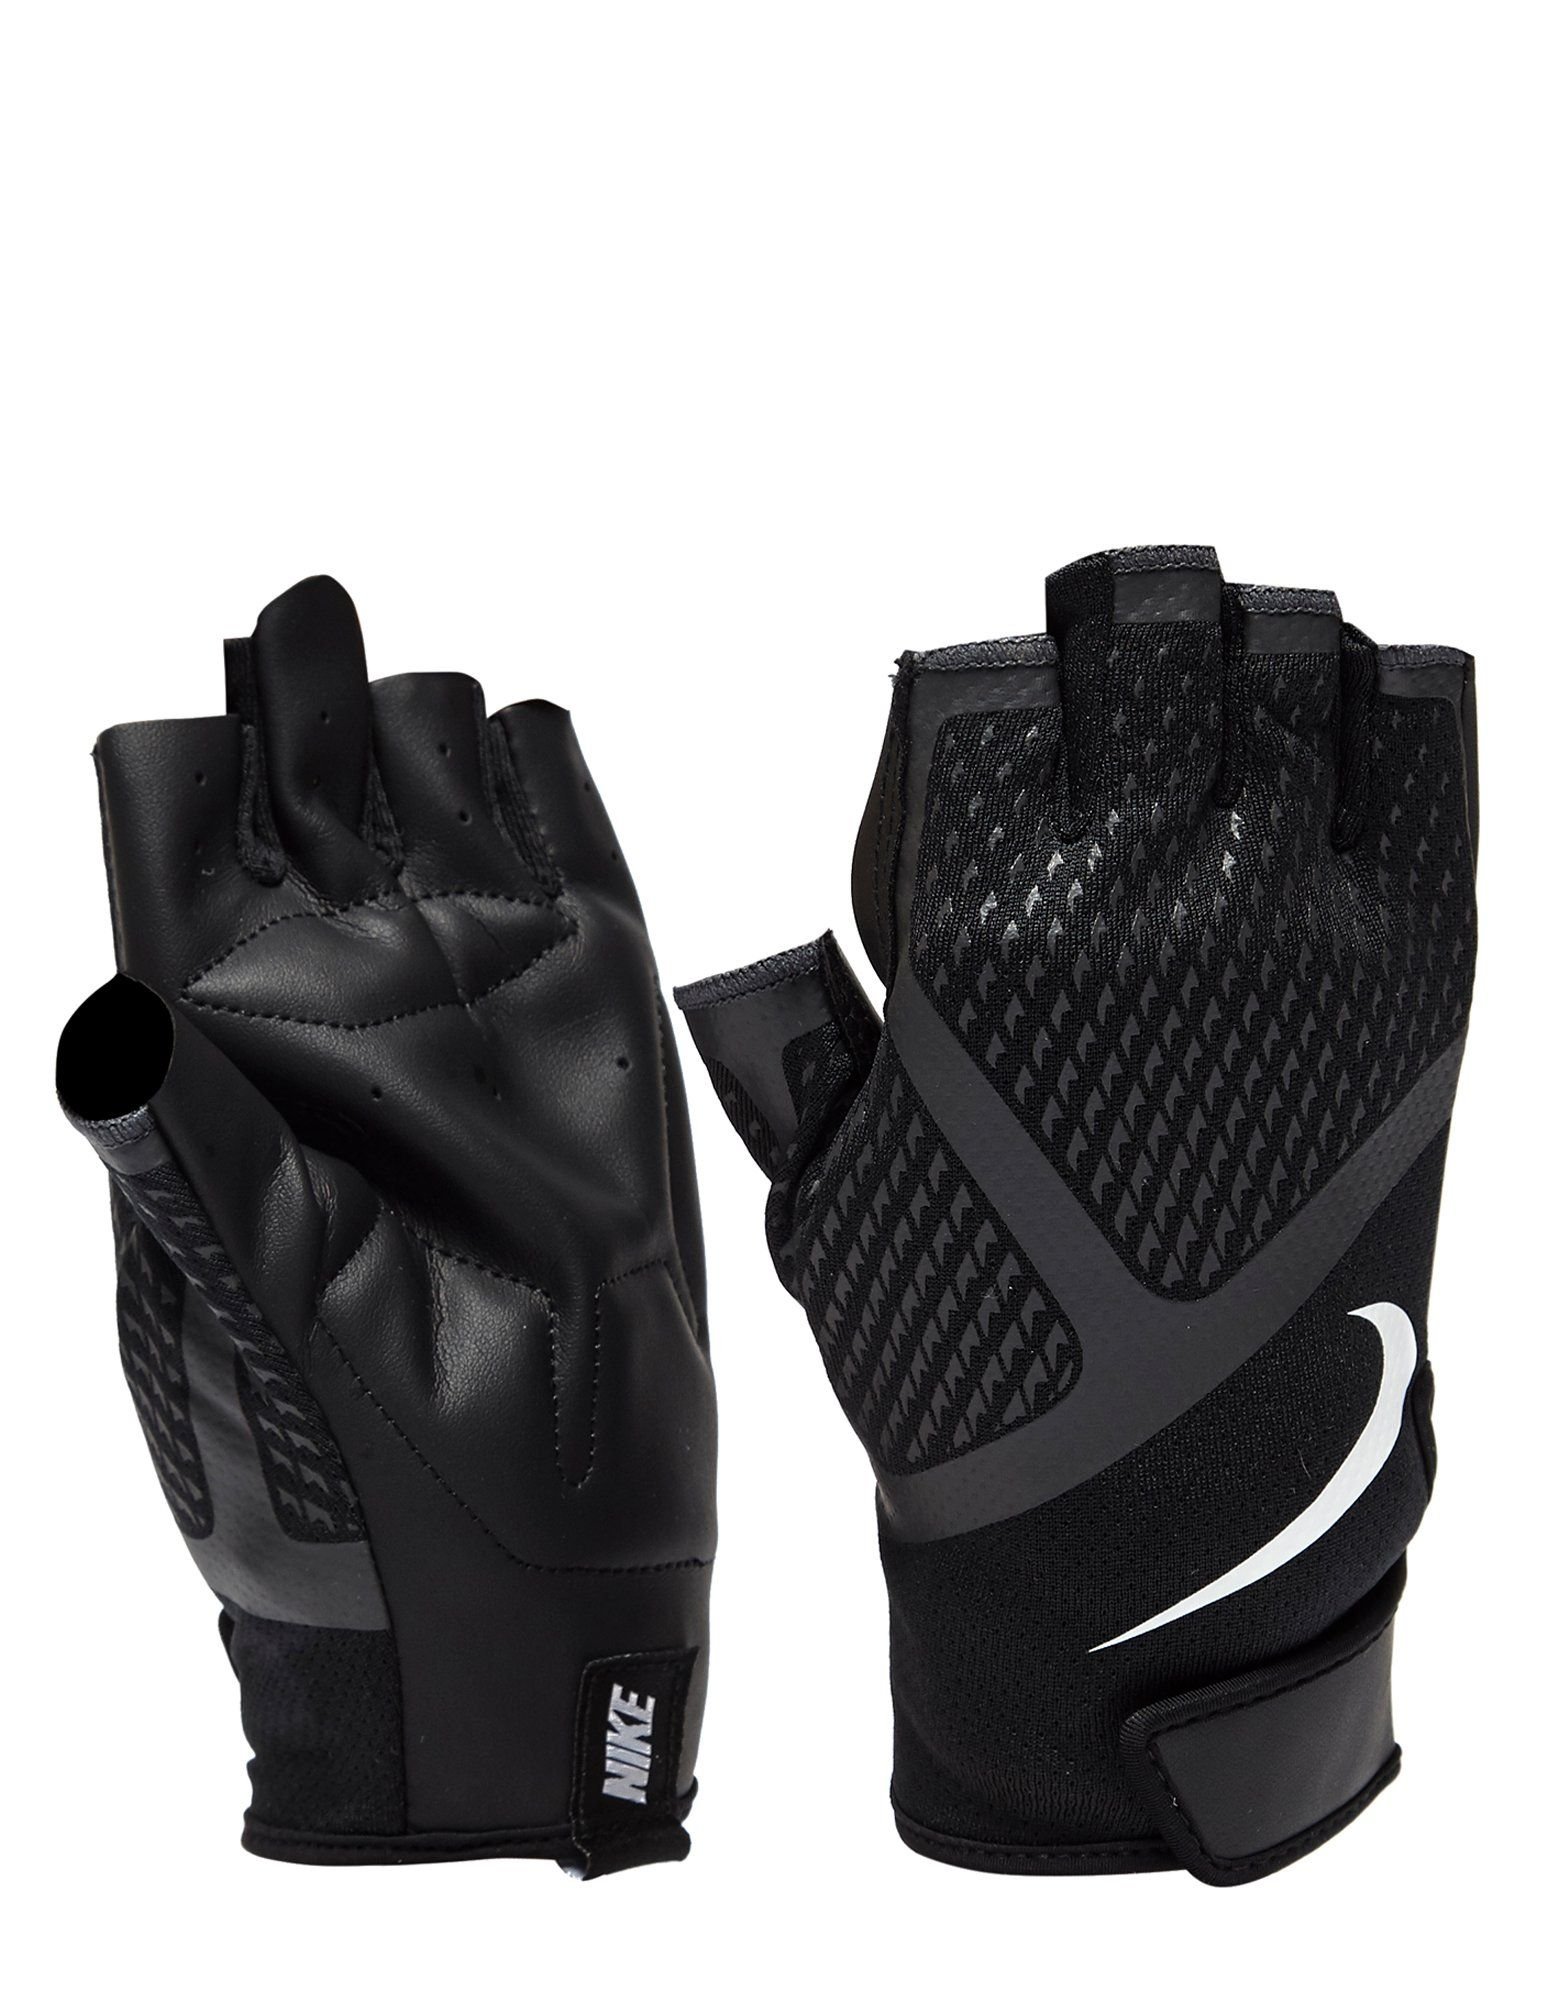 Nike Renegade Fitness Gloves